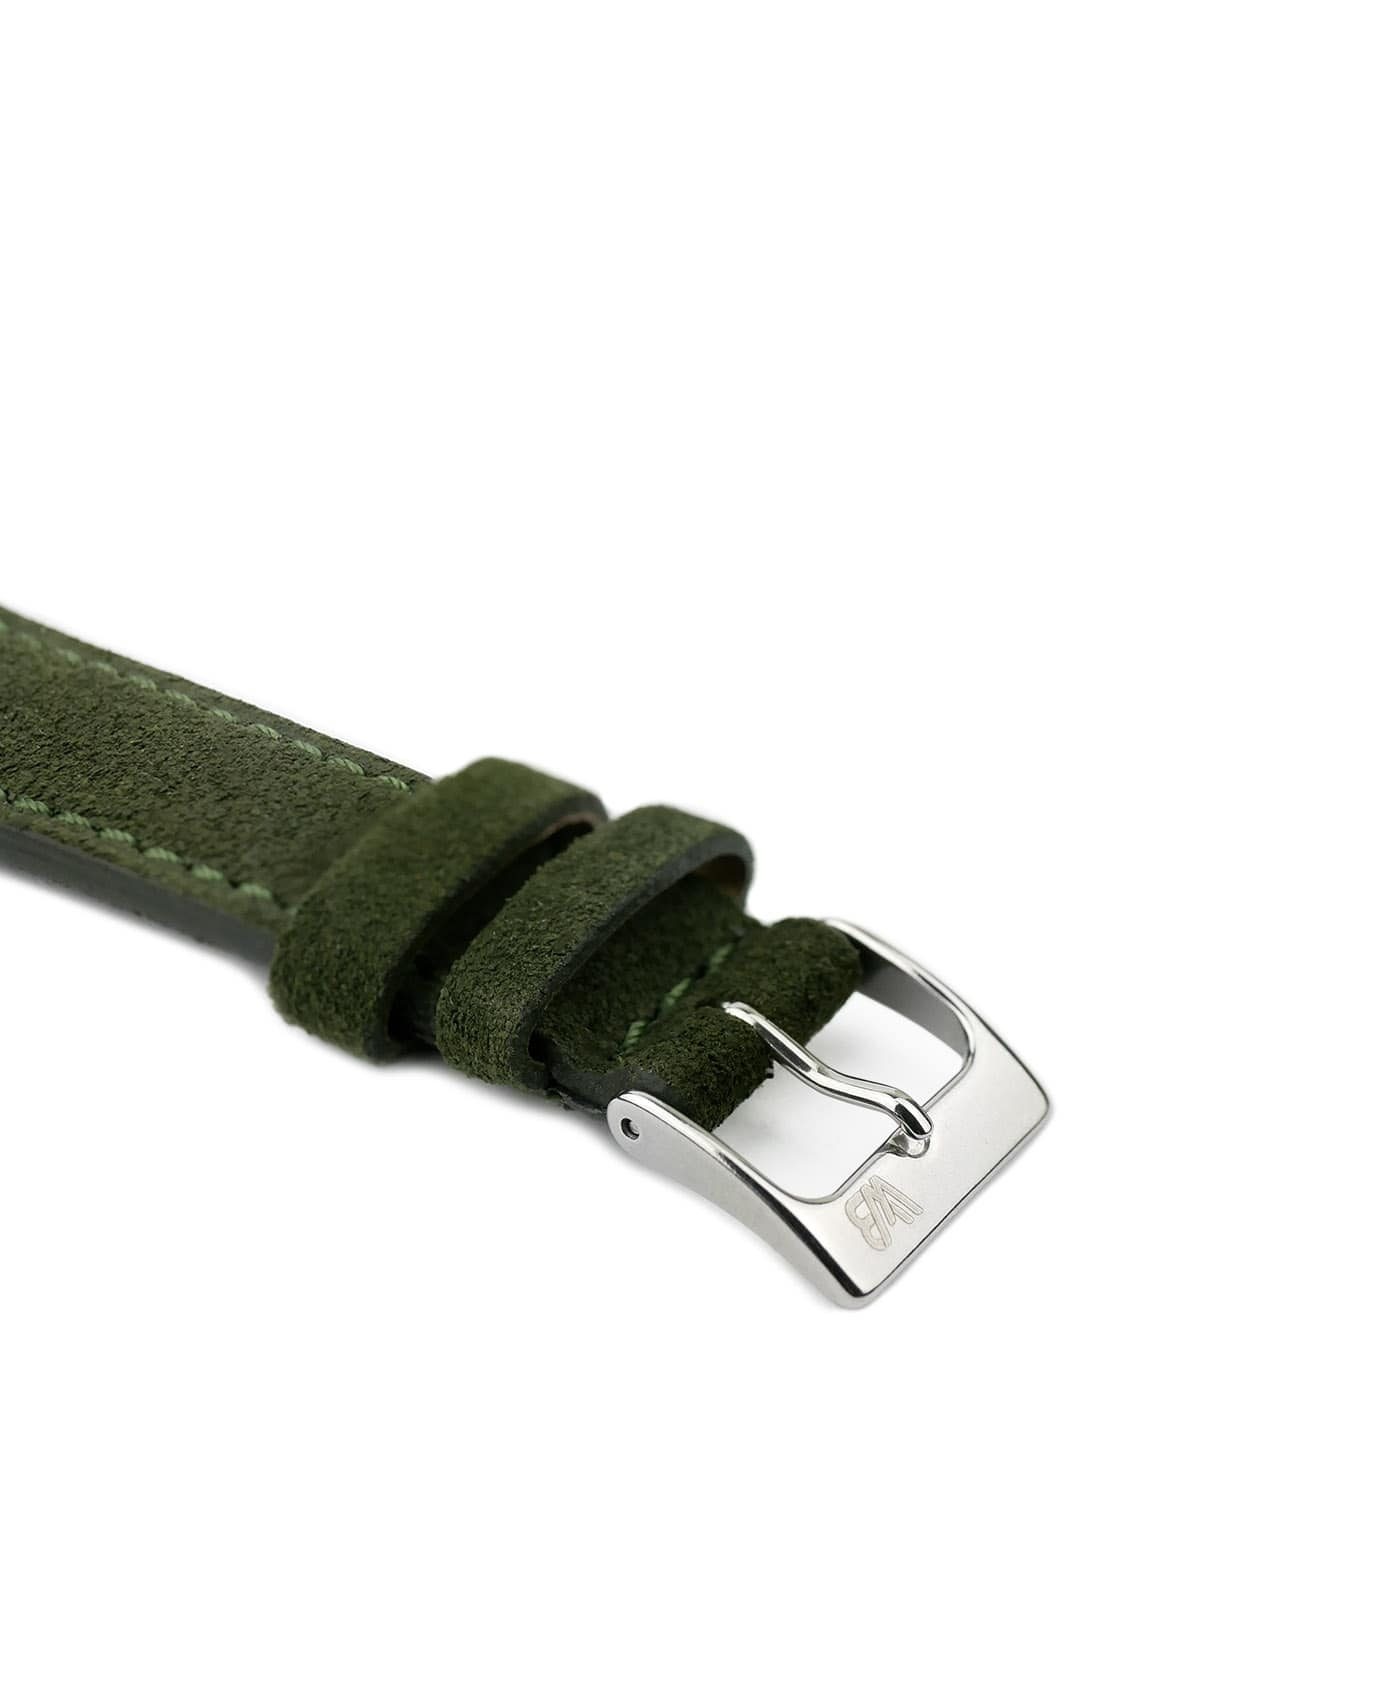 Suede leather strap with side seam_green_side buckle